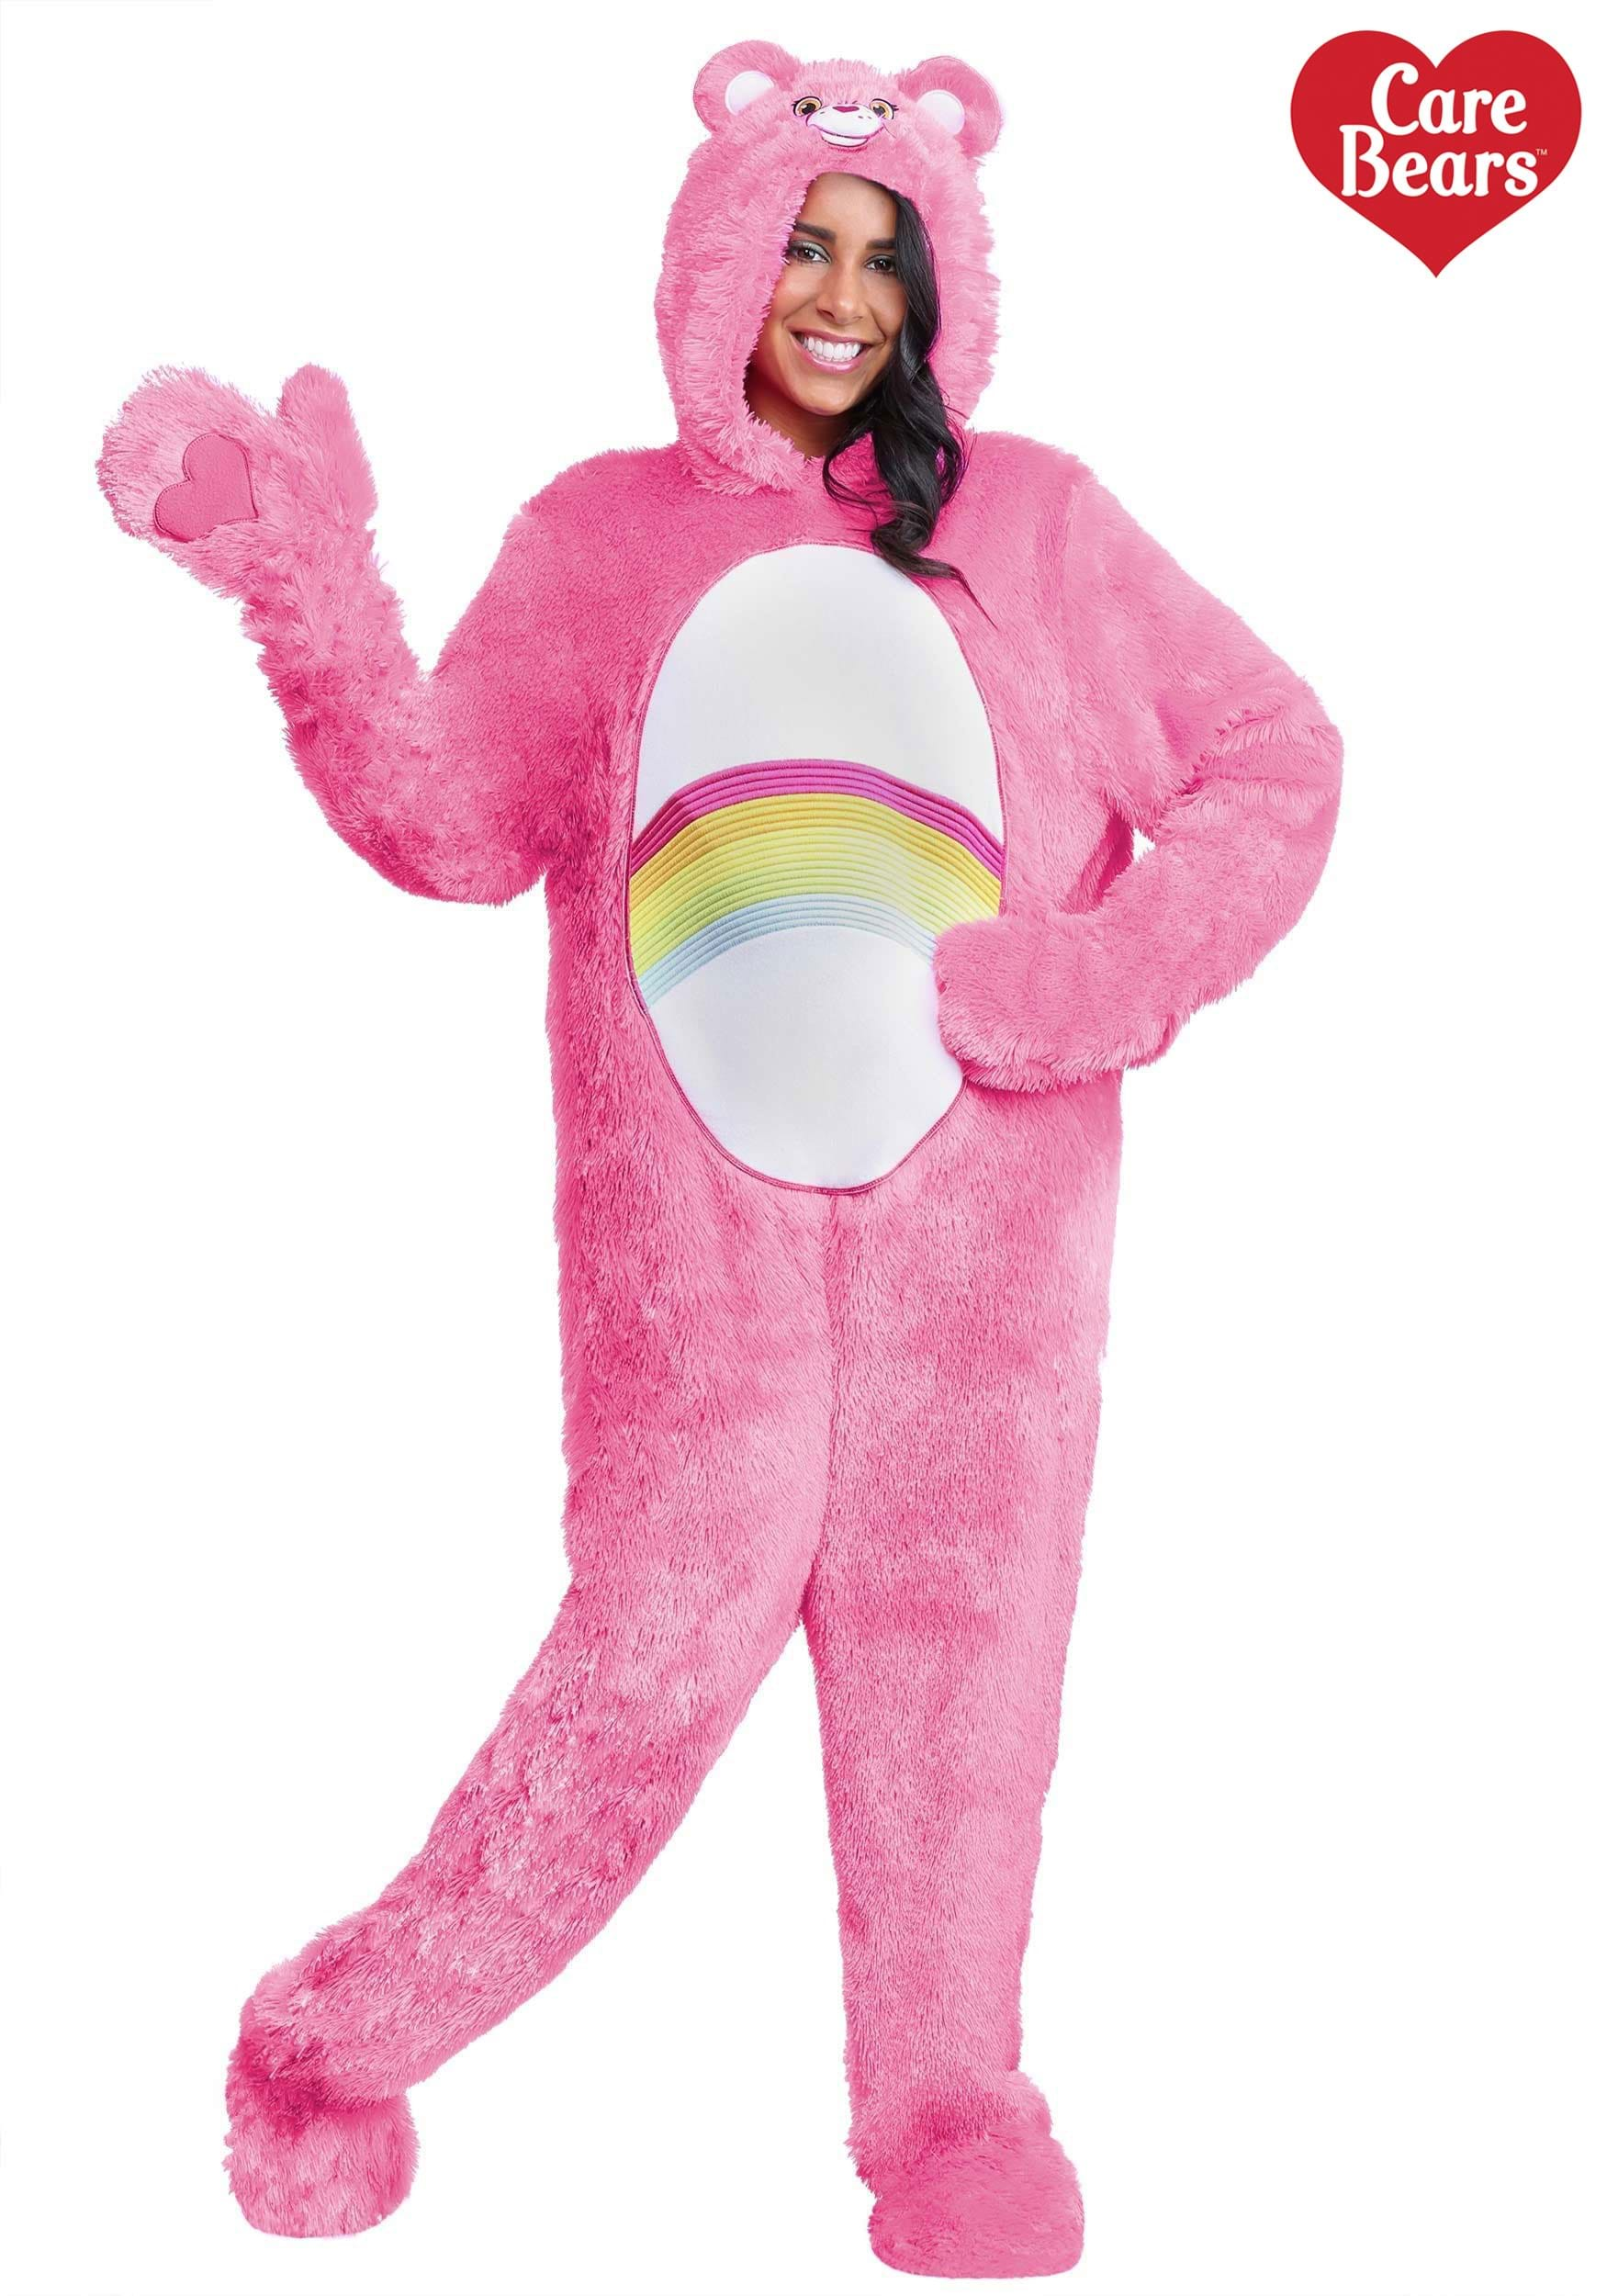 care-bears-adult-classic-cheer-bear-cost